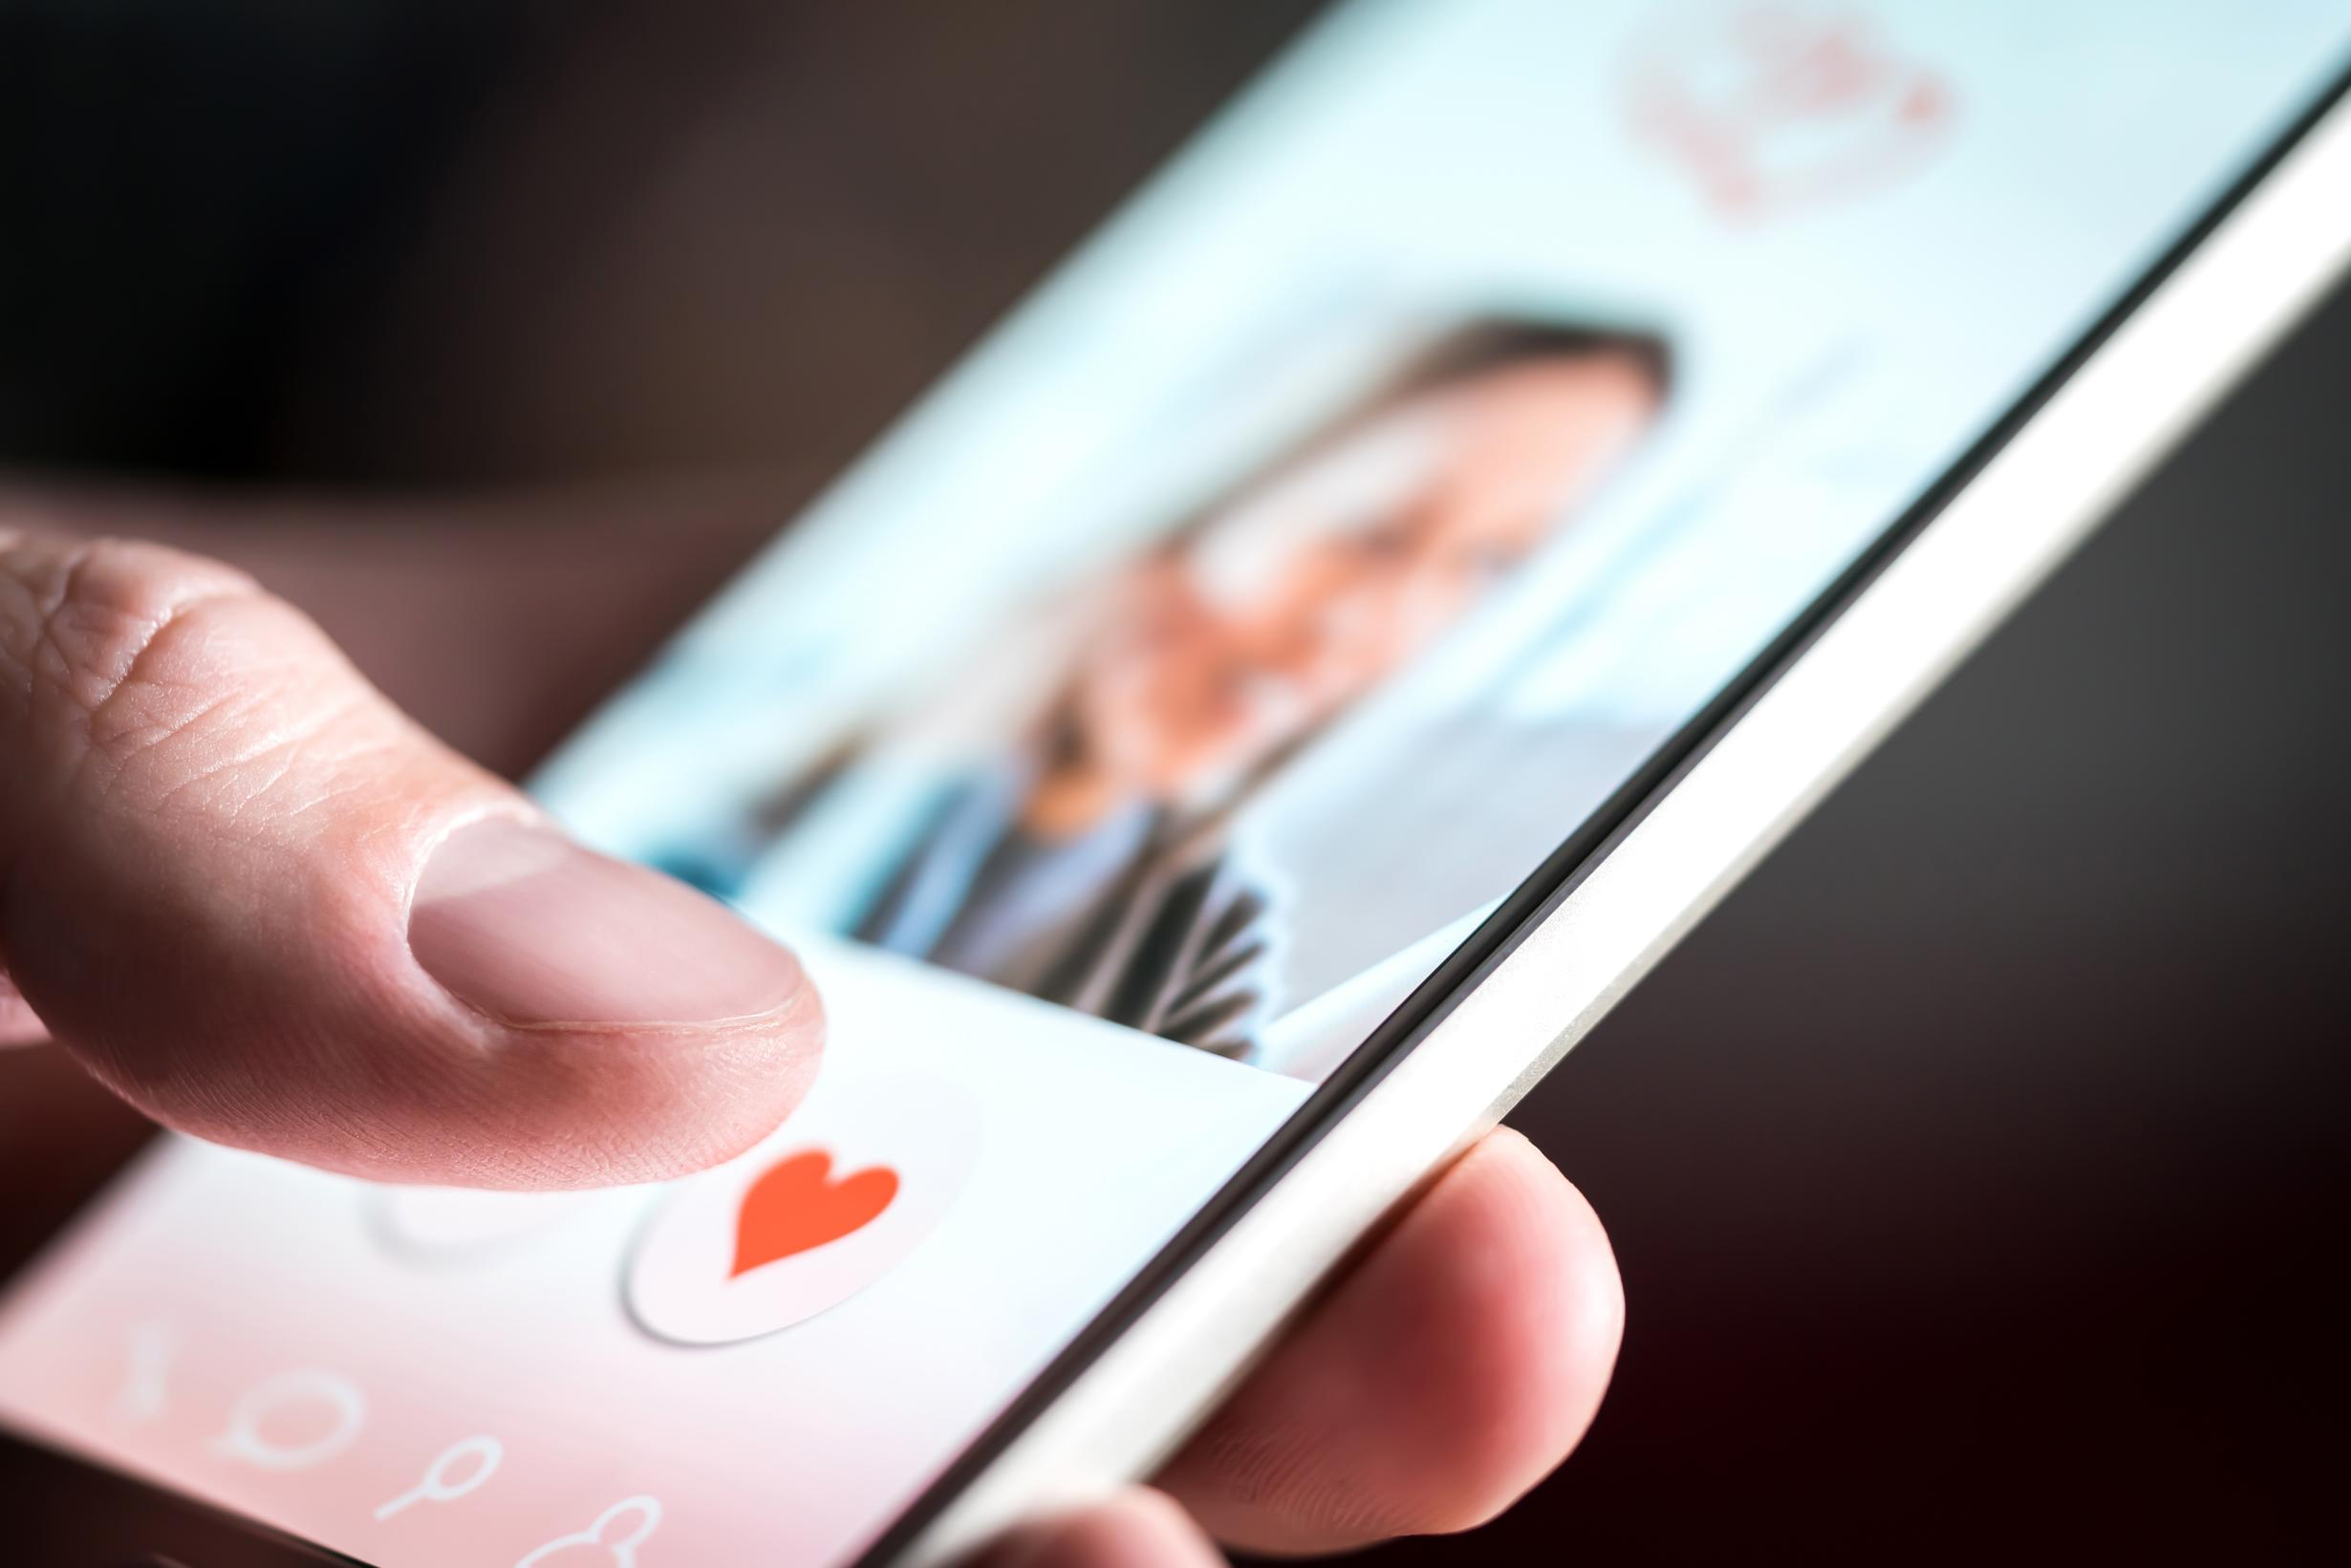 Record-high STD rates in Hawaii linked to online dating — why apps may be making sex less safe